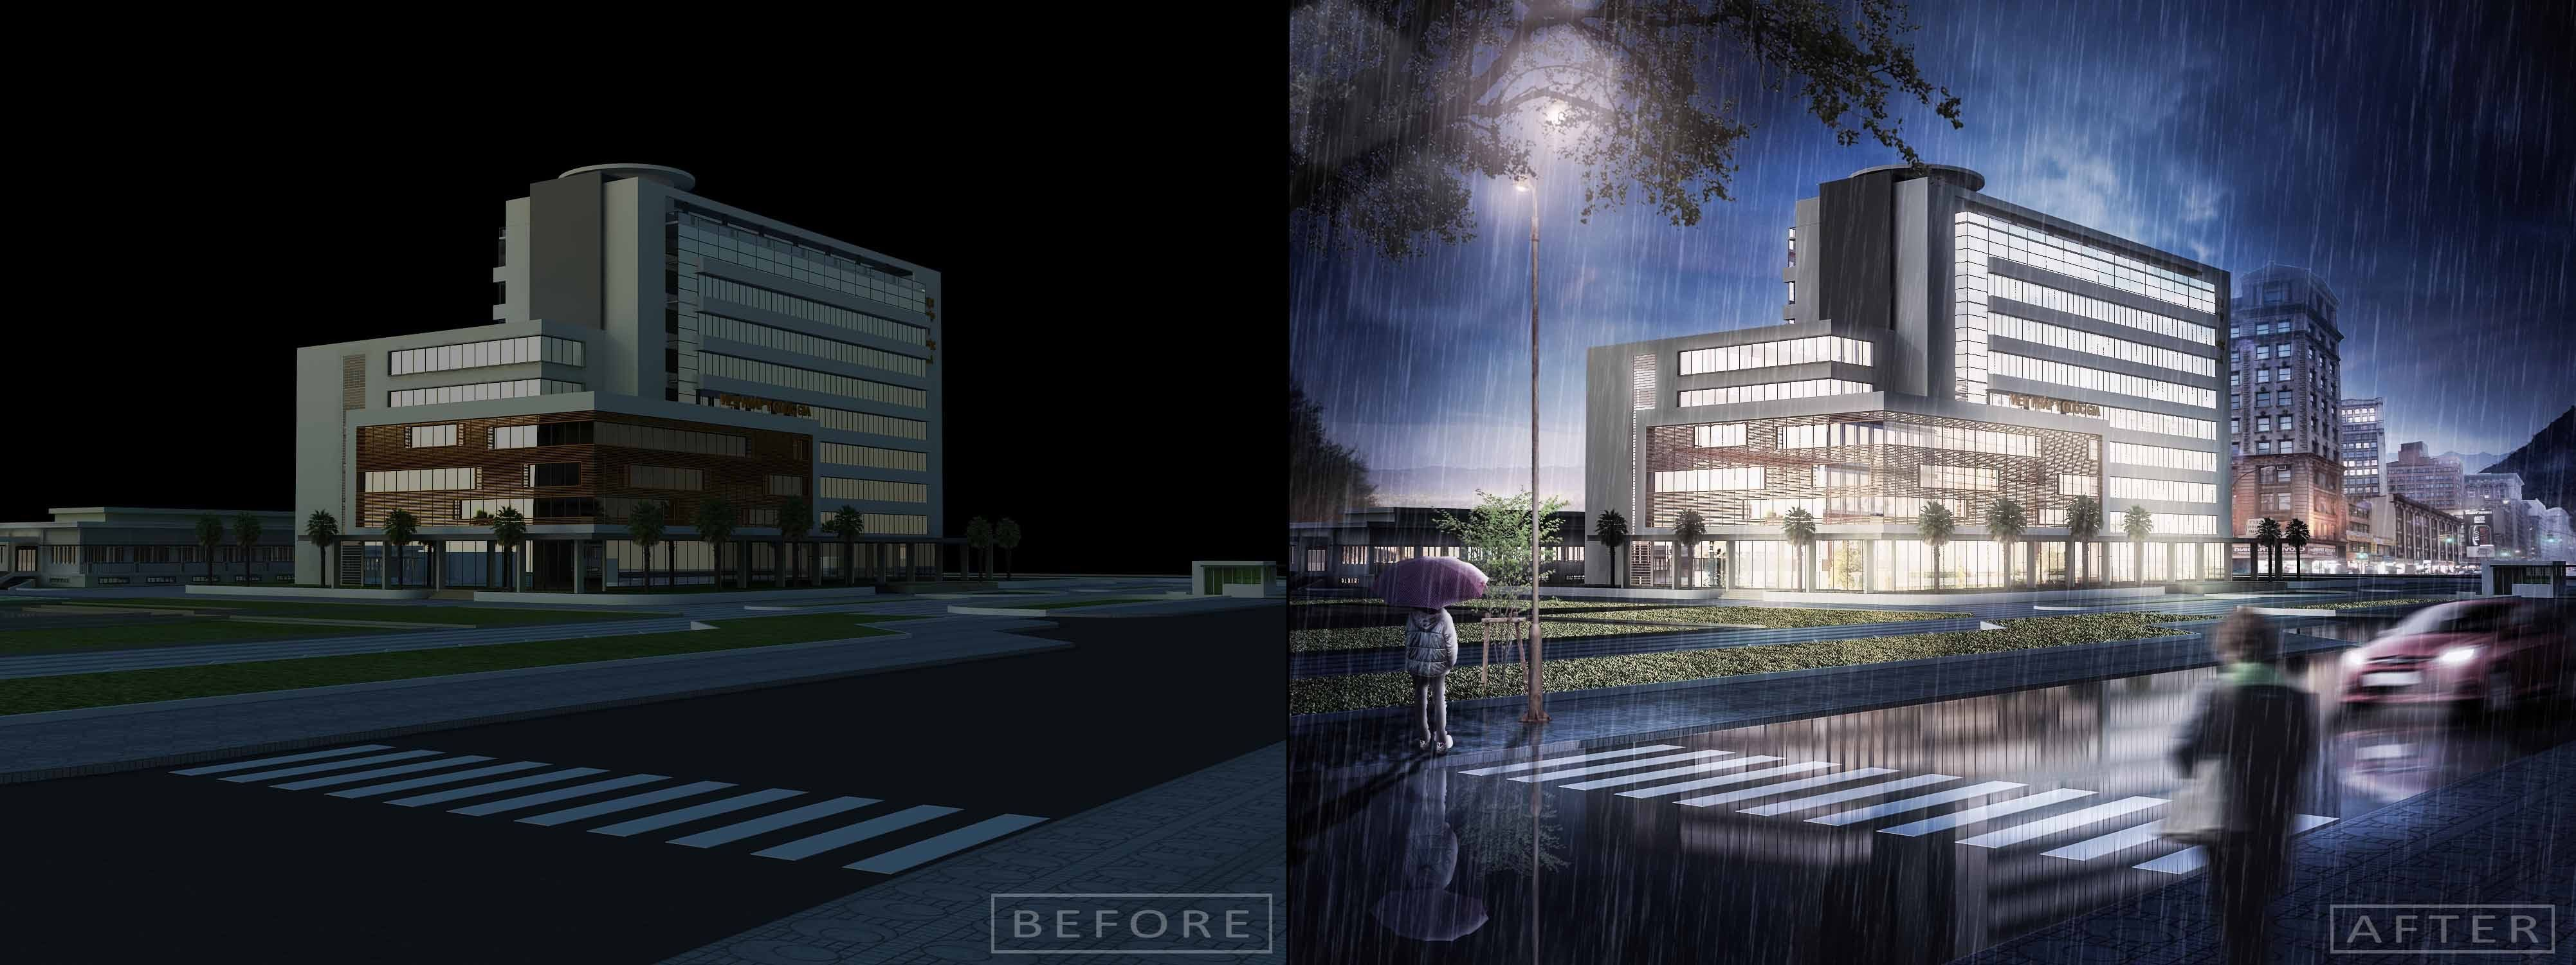 photoshop architecture rendering tutorial day to night how to photoshop architecture rendering tutorial day to night how to put objects people in